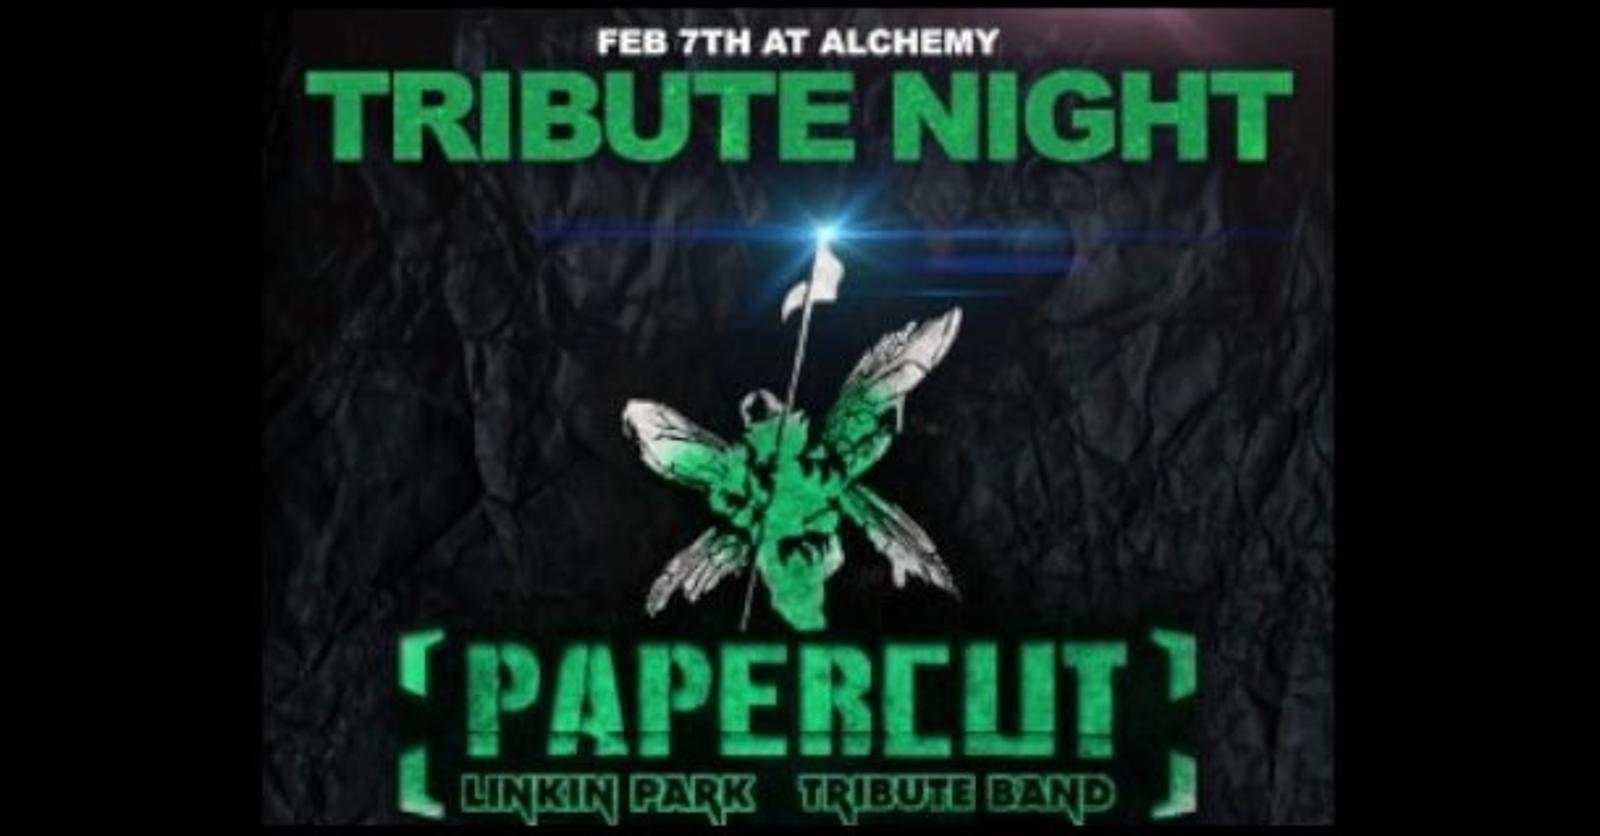 Papercut (Linkin Park Tribute) | Counterfeit (Limp Bizkit Tribute) | Patient 0 (Korn Tribute) | In The Red (Papa Roach Tribute)